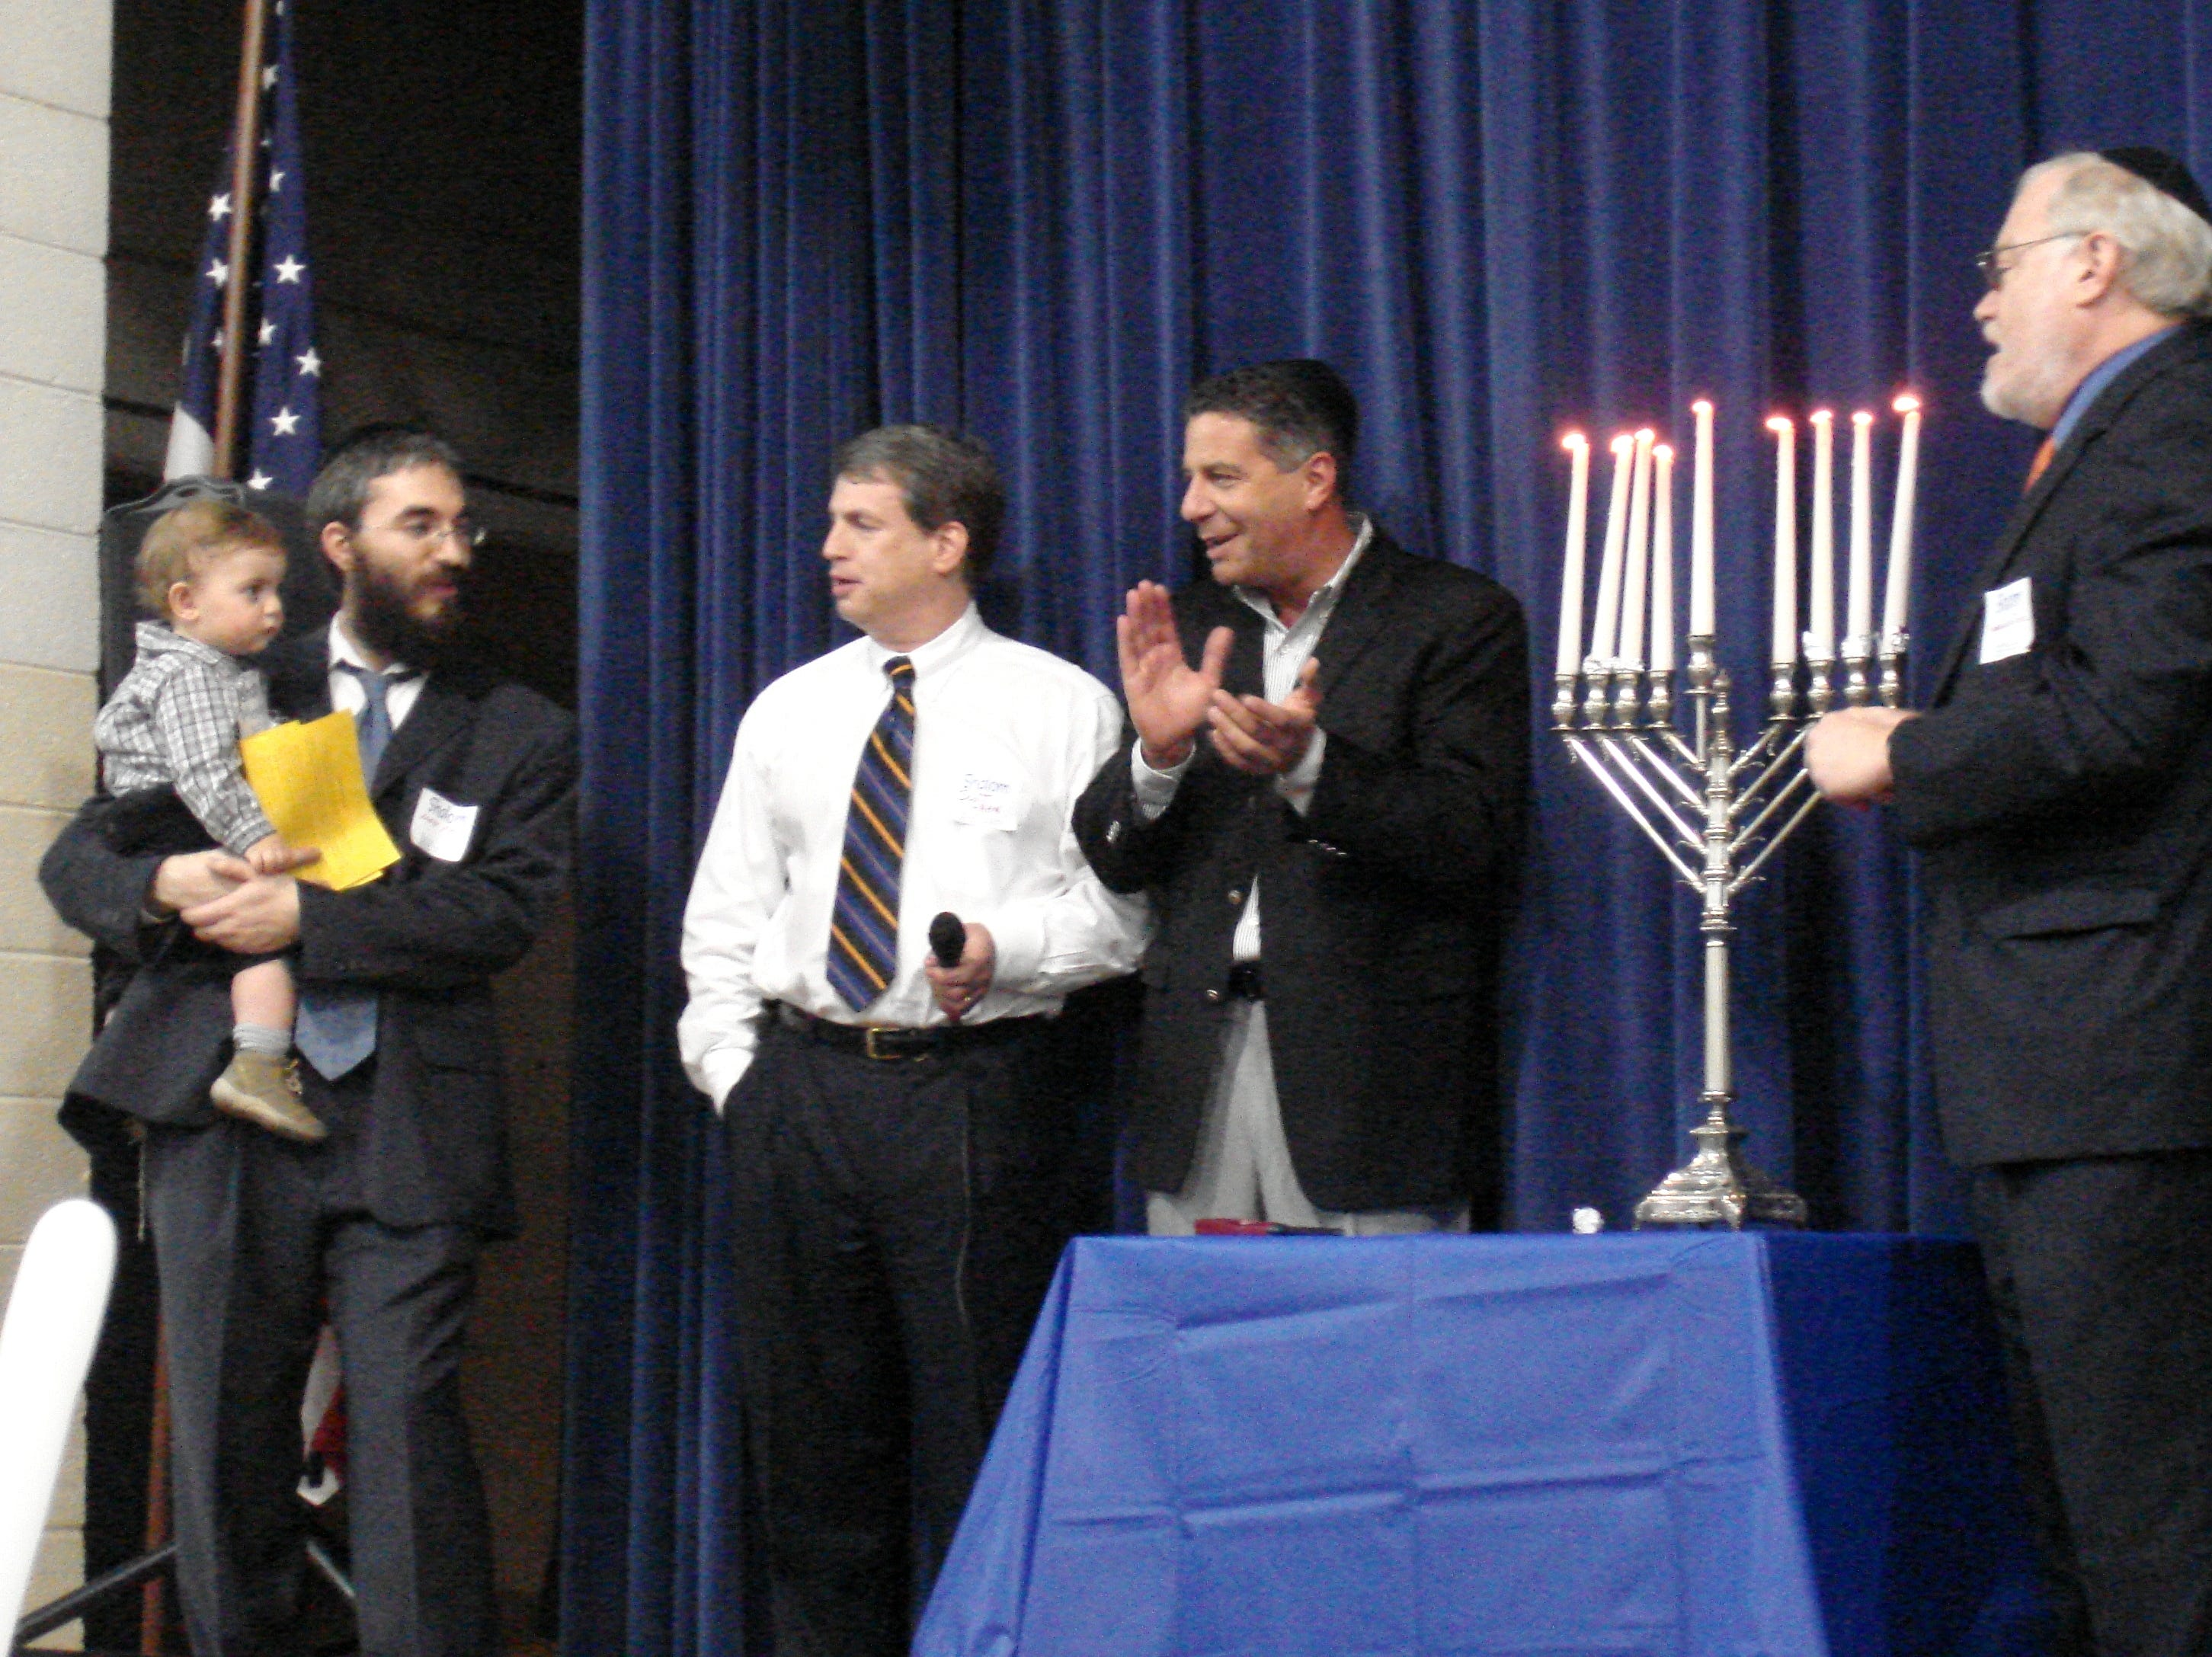 University of Tennessee men's basketball coach Bruce Pearl, fourth from left, claps his hands while singing a traditional Chanukah melody following his lighting of the Menorah during the Menorah Madness celebration held Dec. 11 at the Arnstein Jewish Community Center. From left are Rabbi Yossi Wihelm, holding his son Mendel, Scott Hahn, Pearl and Rabbi Louis Zivic.